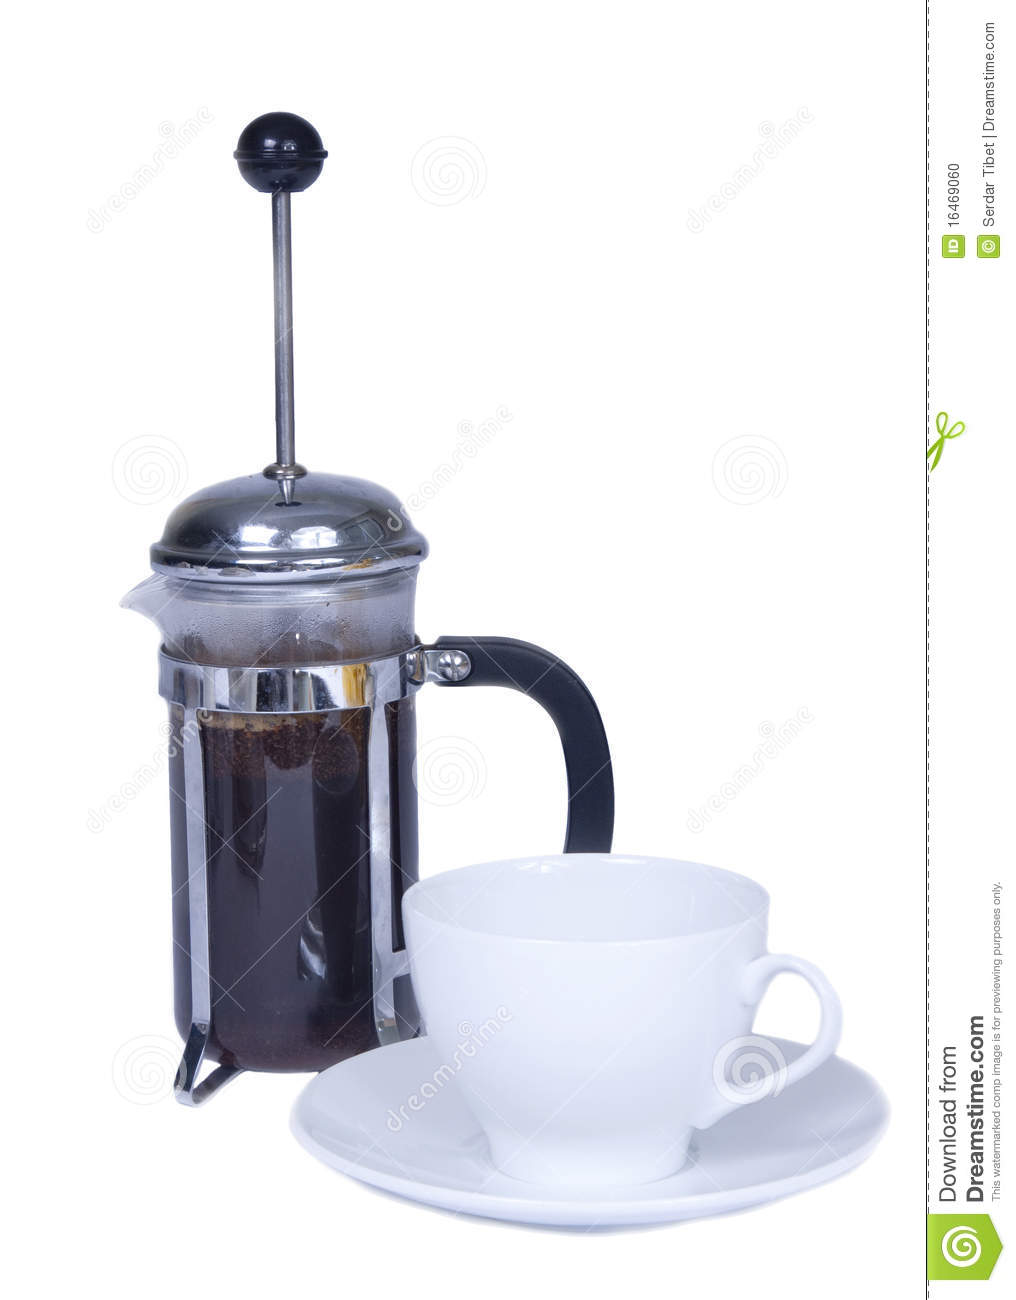 French Press Coffee Maker Stock Photo - Image: 16469060